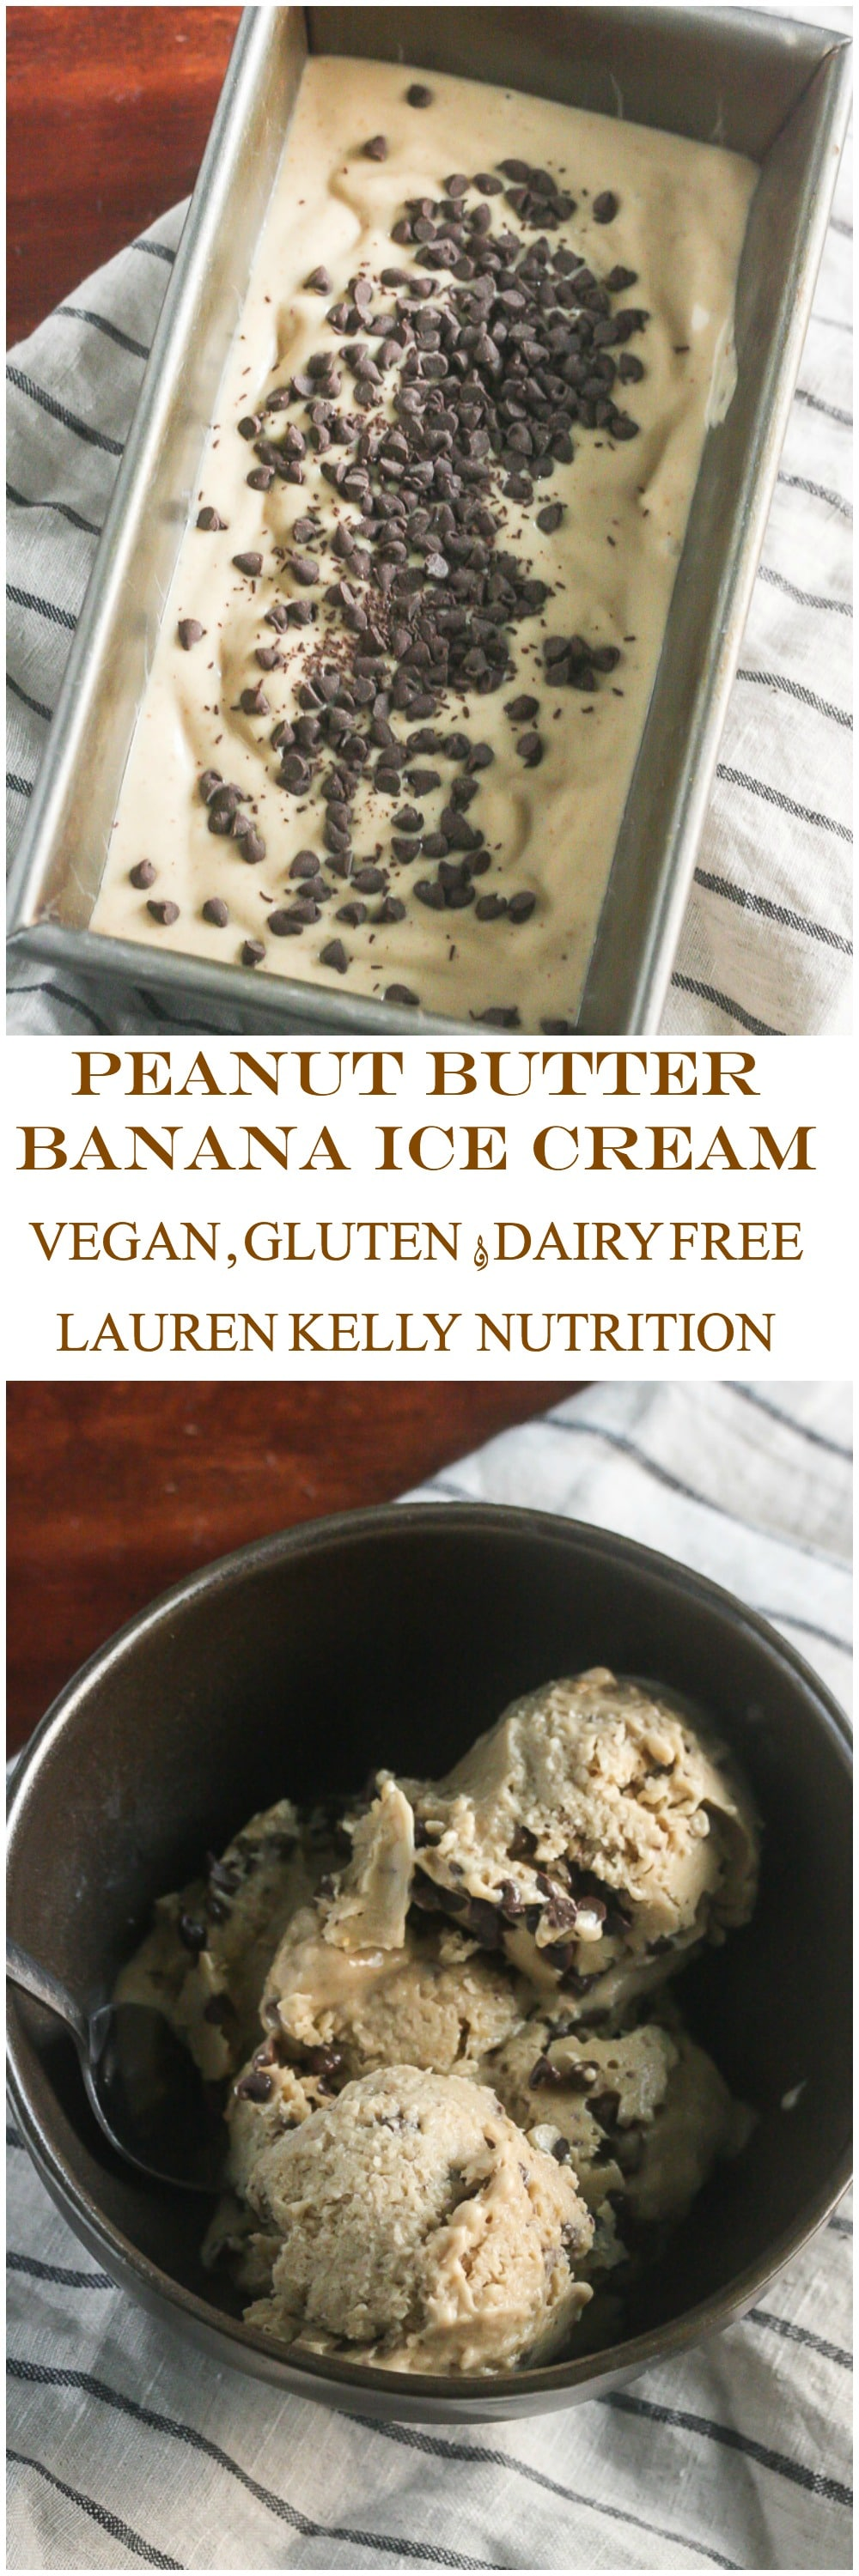 Peanut Butter Banana Chocolate Chip Ice Cream {4 ingredients, V, DF, GF}